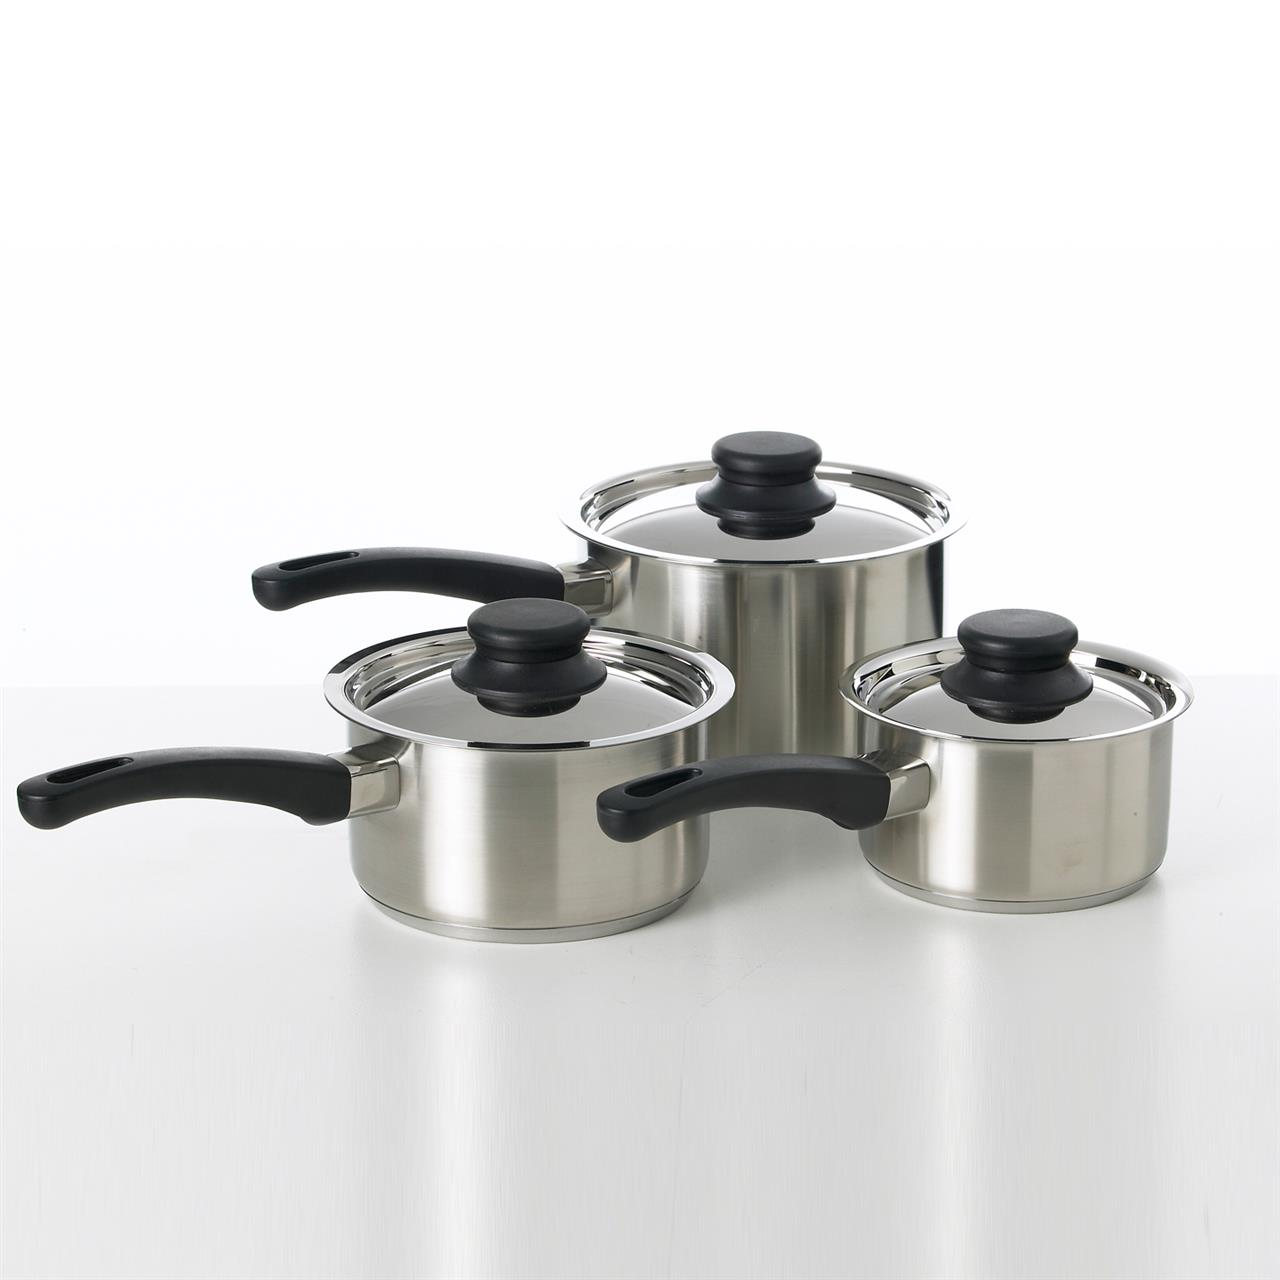 3 Piece Stainless Steel Saucepan Set